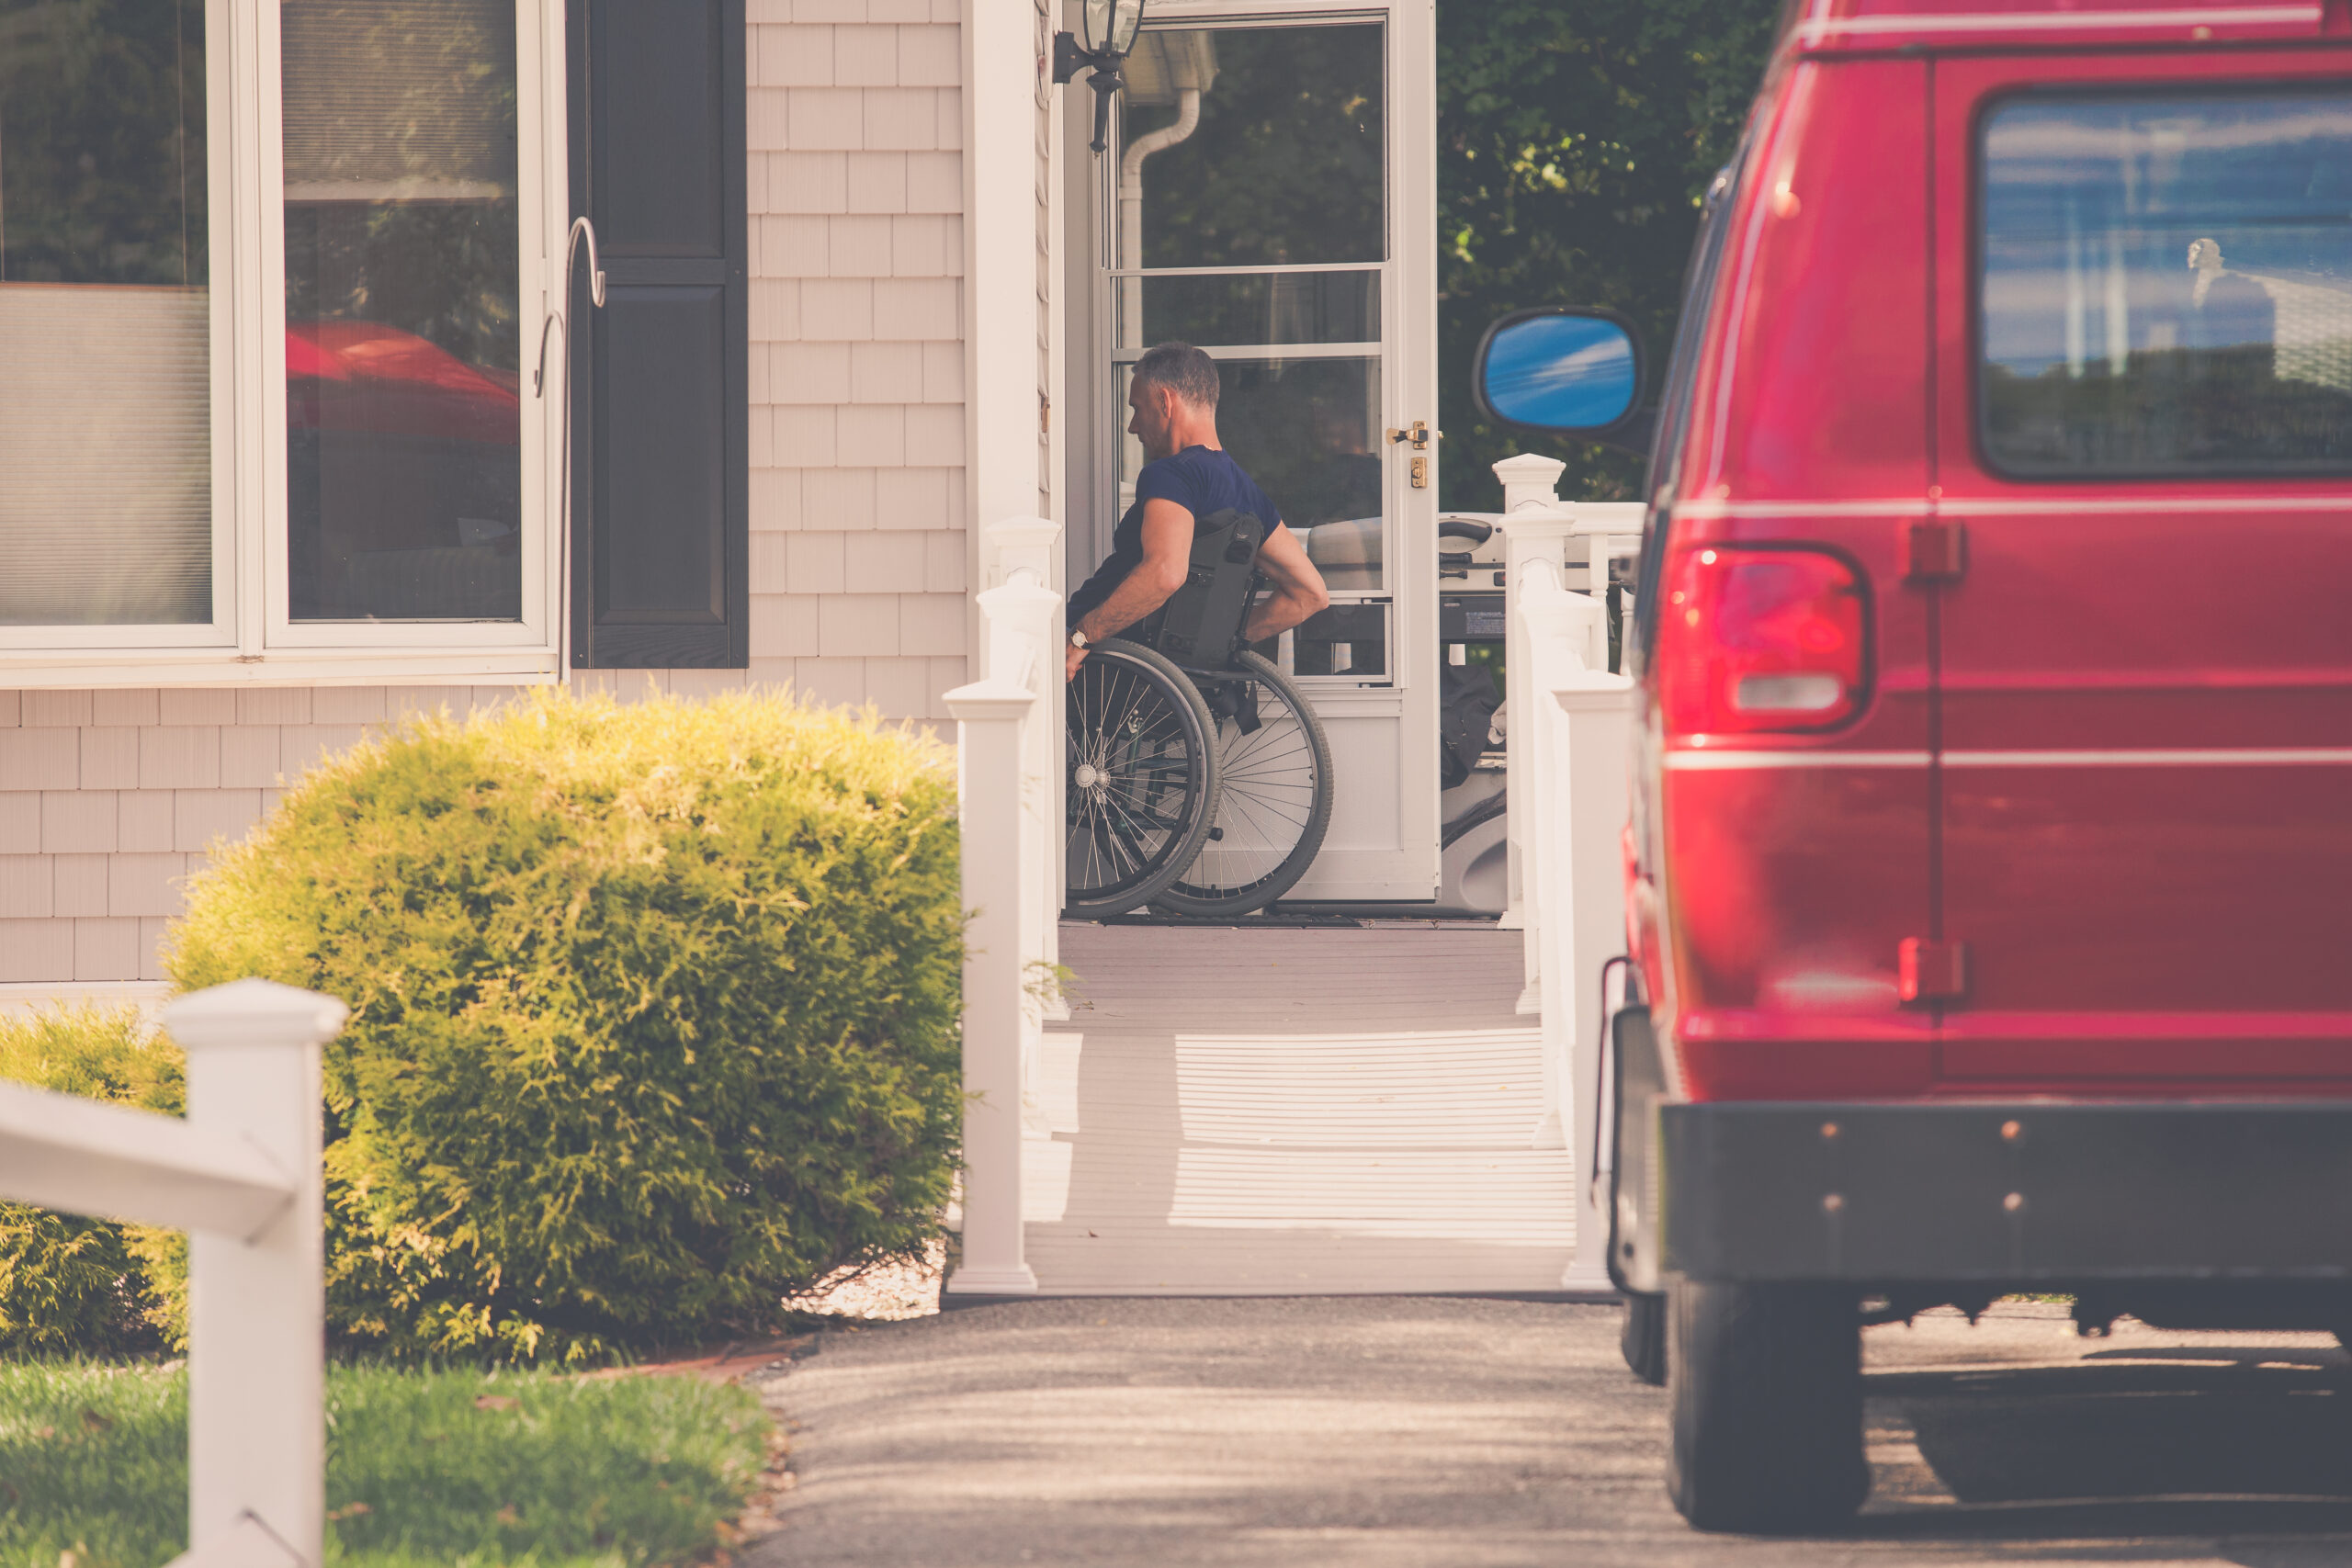 Red van with man in wheel chair entering home after leaving car